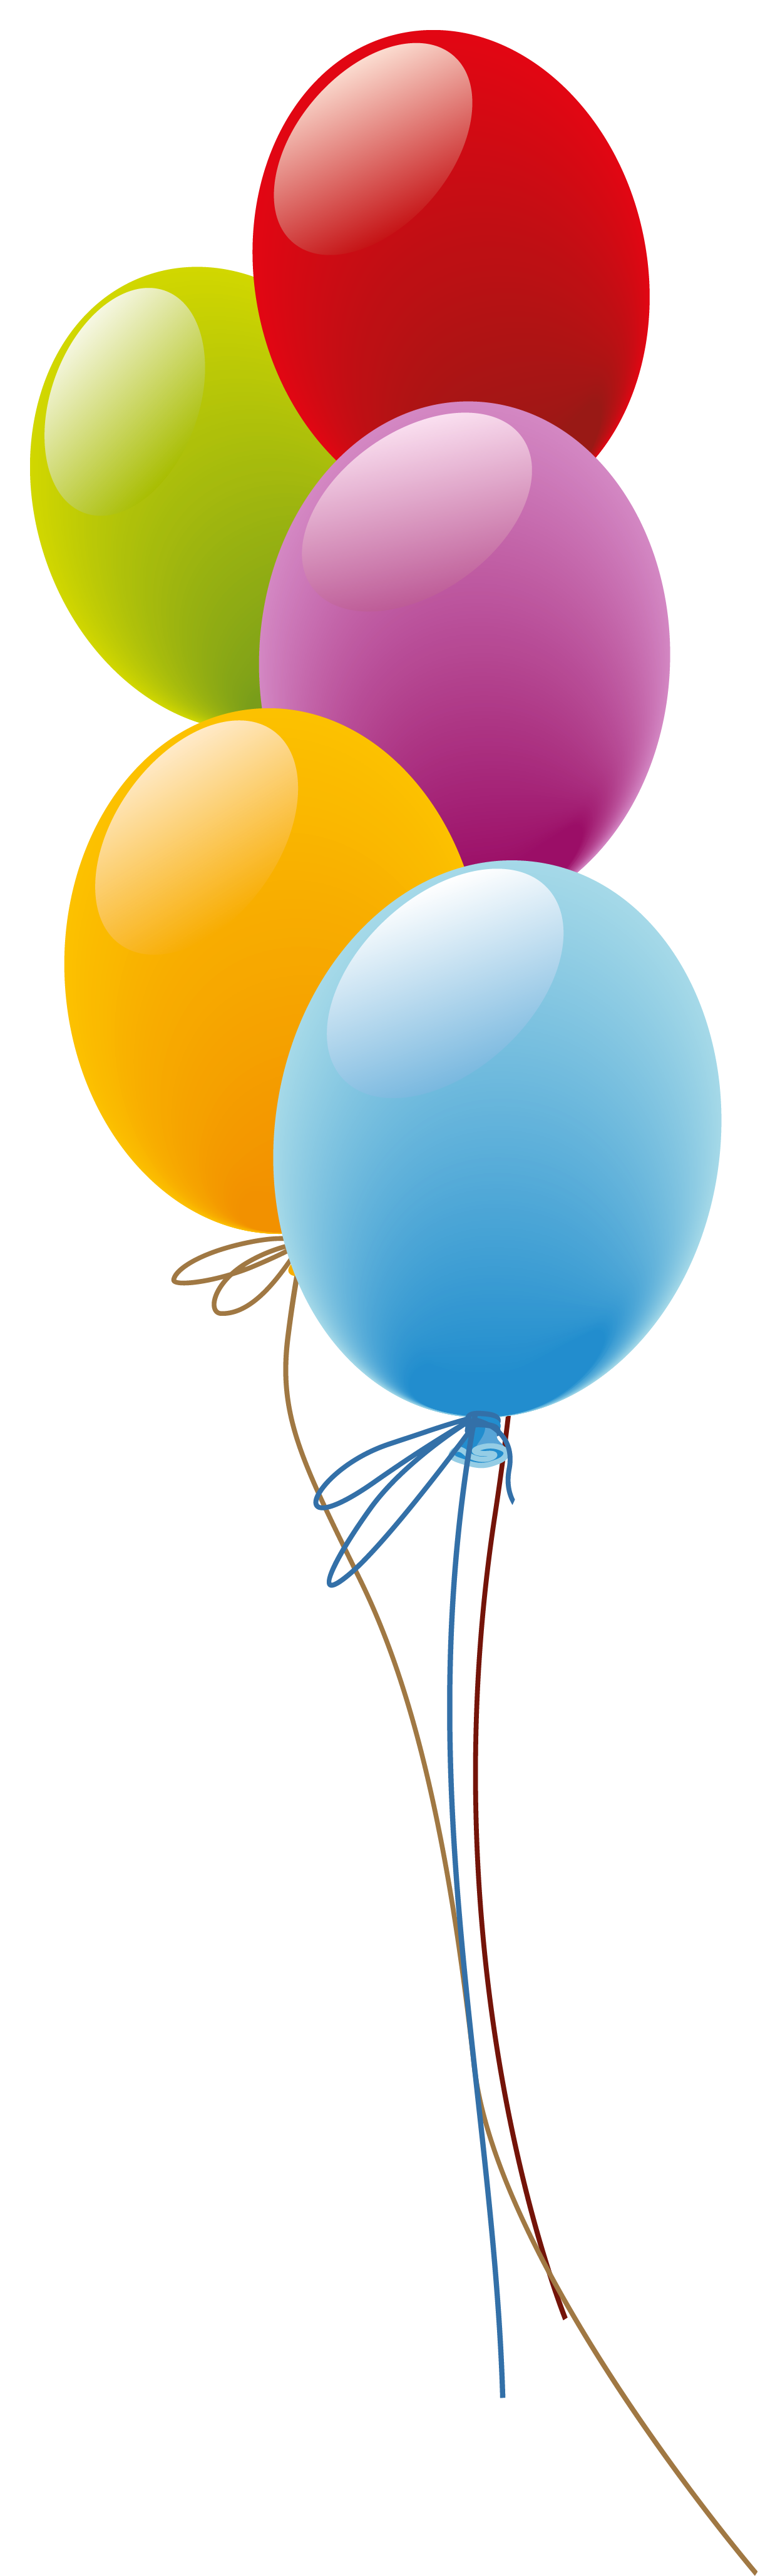 Balloons png picture artistic. Four clipart birthday baloon graphic transparent